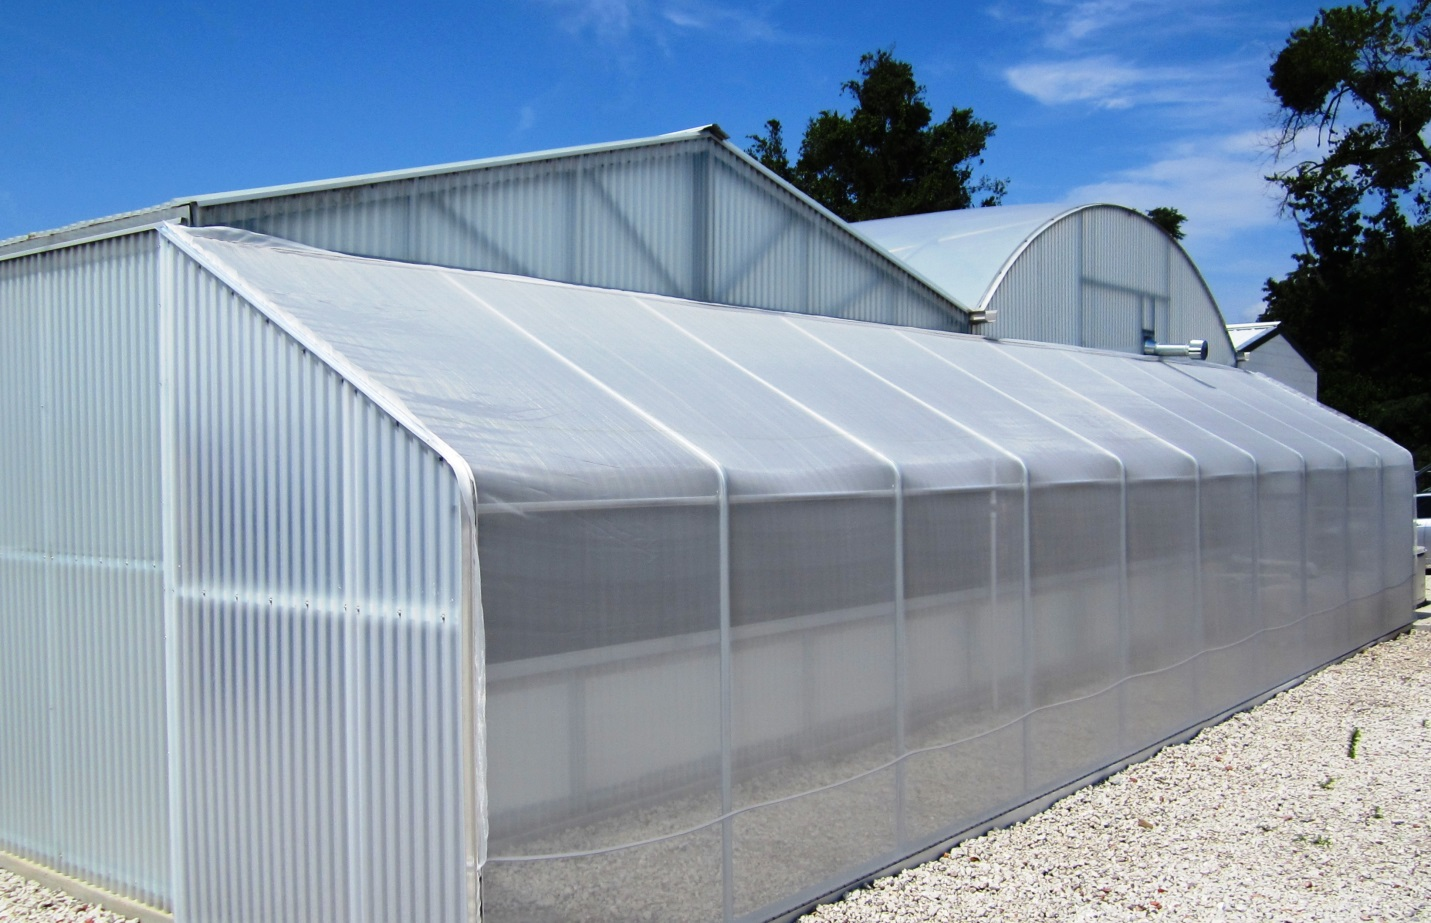 Insect Screens For Greenhouses Mesh 17 75 Optinet Quick